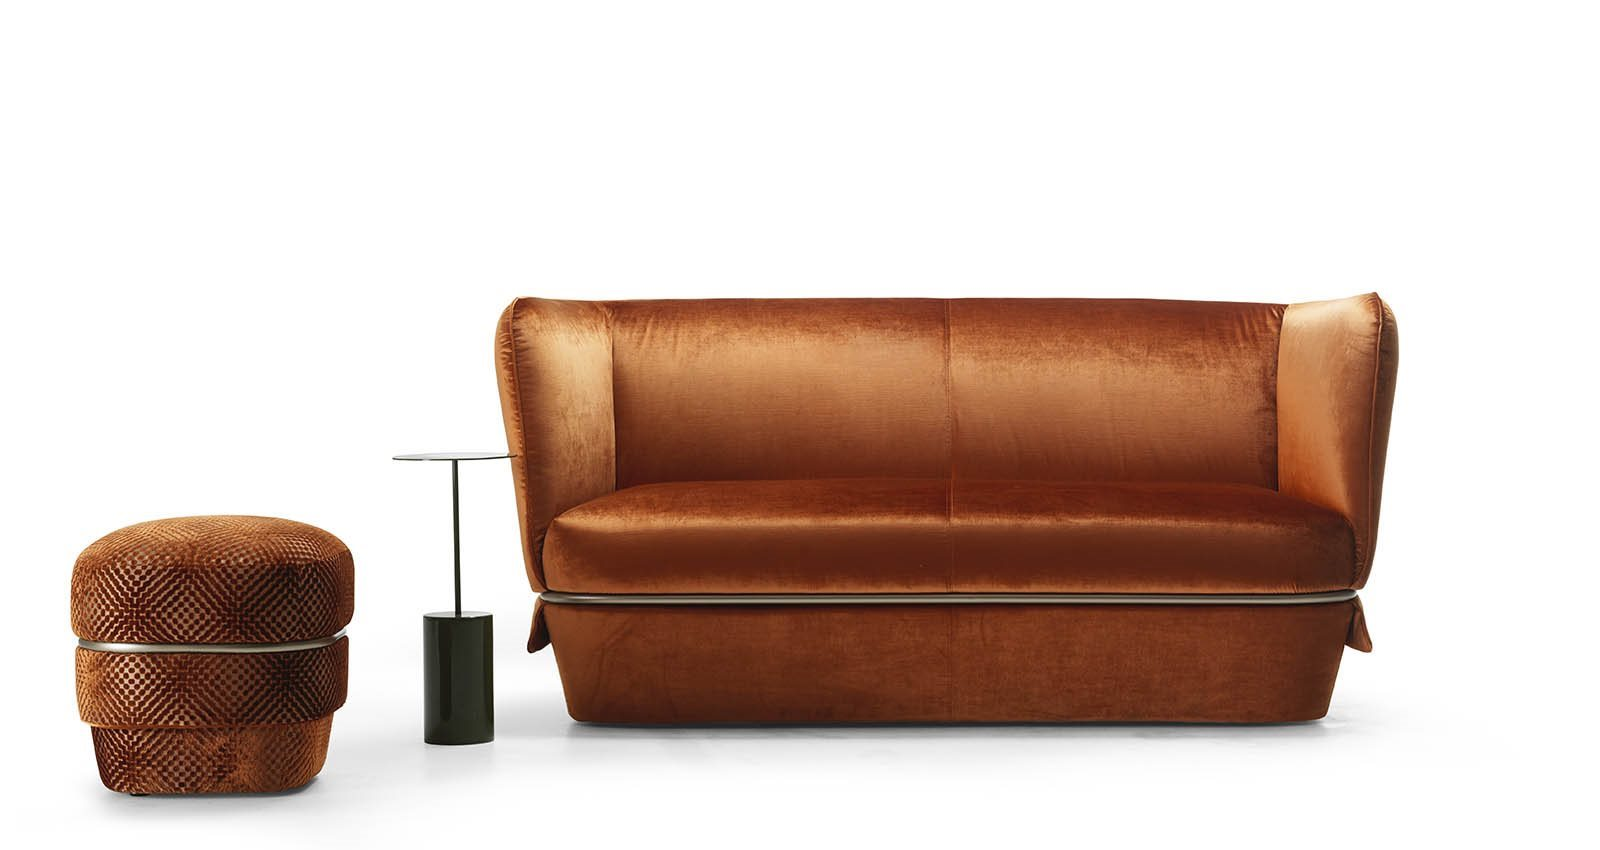 Chemise Sofa - Chemise sofa is one of the most iconic pieces of the entire MyHome collection with its soft and enveloping design. It is devised to express sophisticated and contemporary comfort, thanks to the abundance of fabric that upholsters the frame and a tubular loop-belt that accentuates its generous shape. The sofa is completed by the new ottoman version of Chemise: an object boasting a multitude of functions, sometimes used as a seat, and others as a footrest. Roundness appears to be the order of the day for this small furnishing which lends its surroundings fun and original style.  The Chemise sofa has a wooden frame covered with polyurethane foam and polyester fibre lining with a fabric cover   Matter of Stuff